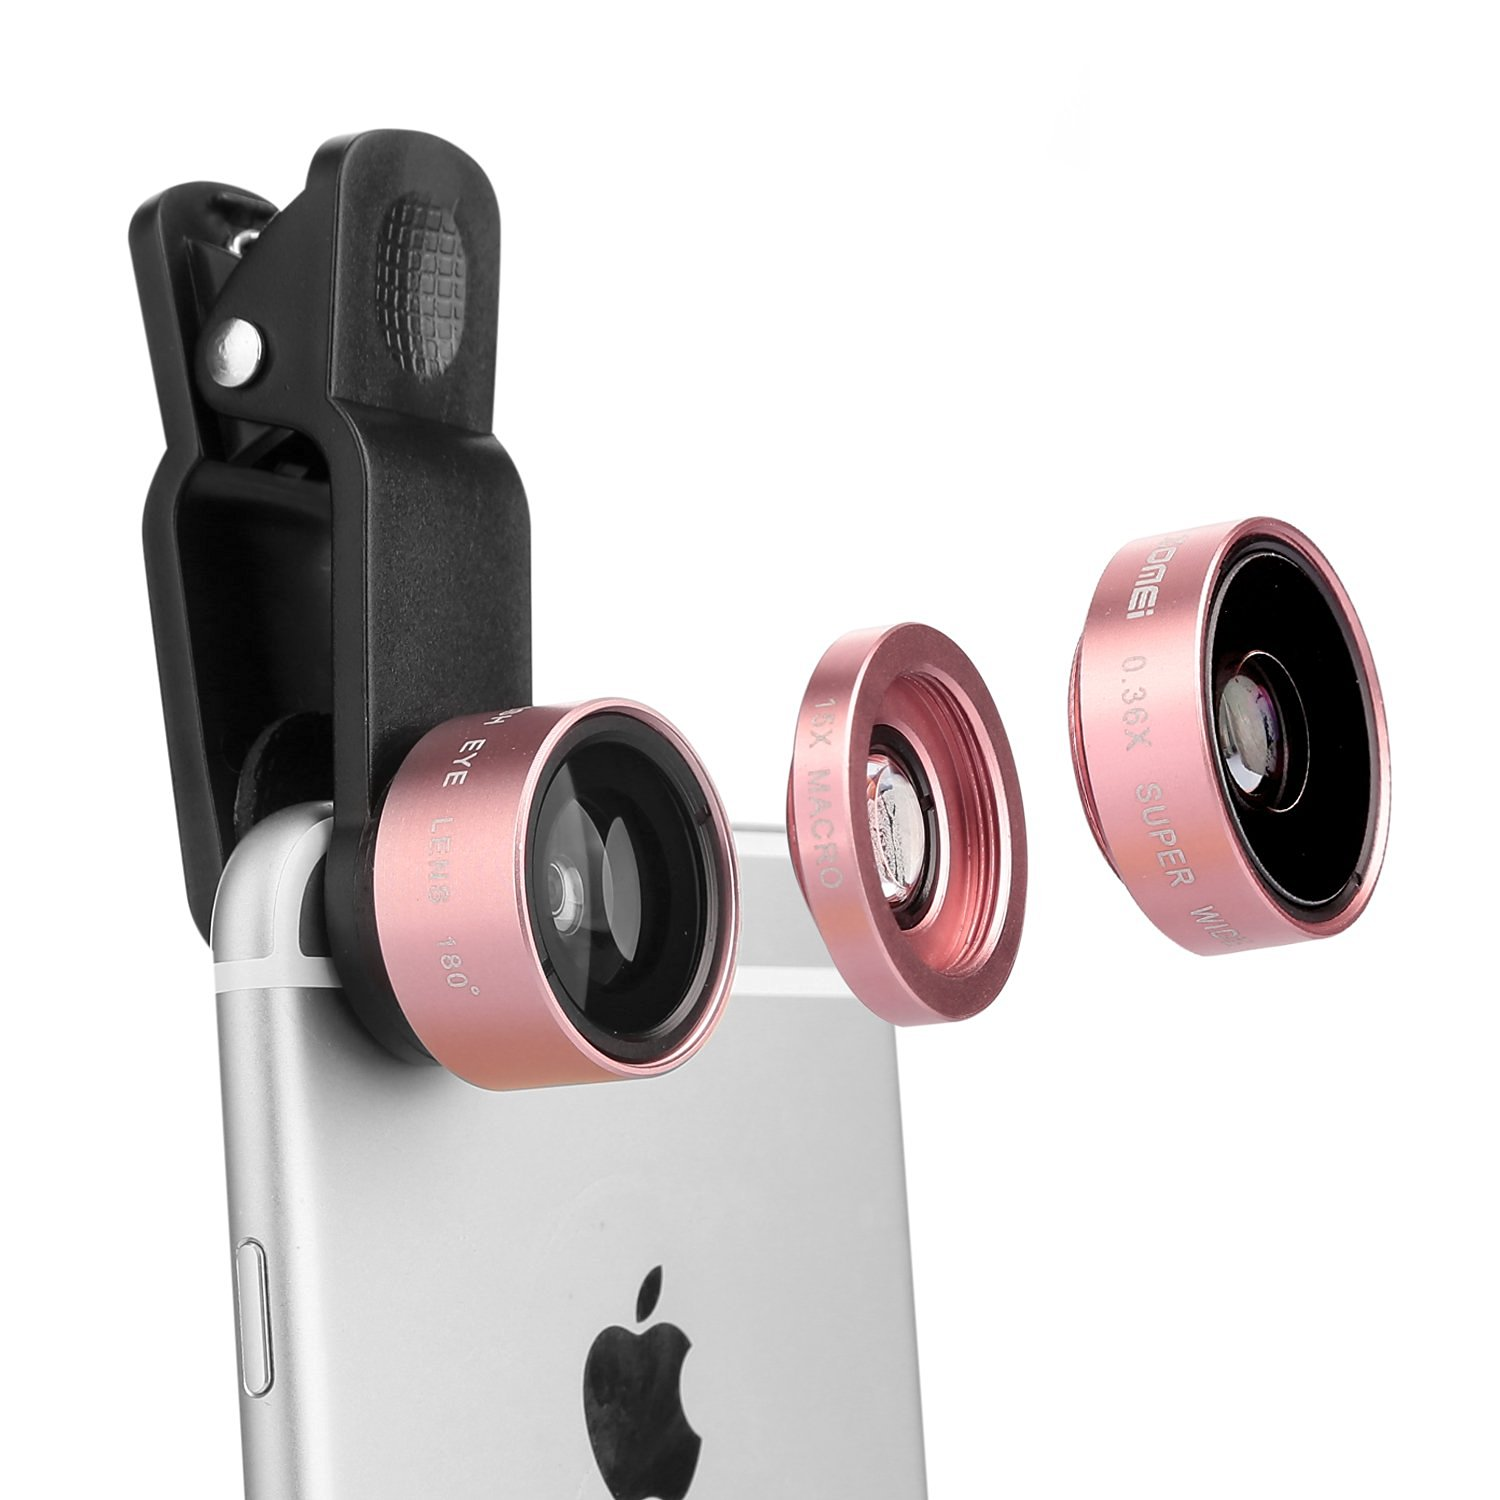 Zomei 3 in 1 Fish Eye + Macro Lens + 0.36X Wide Angle Cell Phone Camera Clip on Lens For iphone 6/ 6s/ 6s Plus Samsung SmartPhones(Rose Gold)